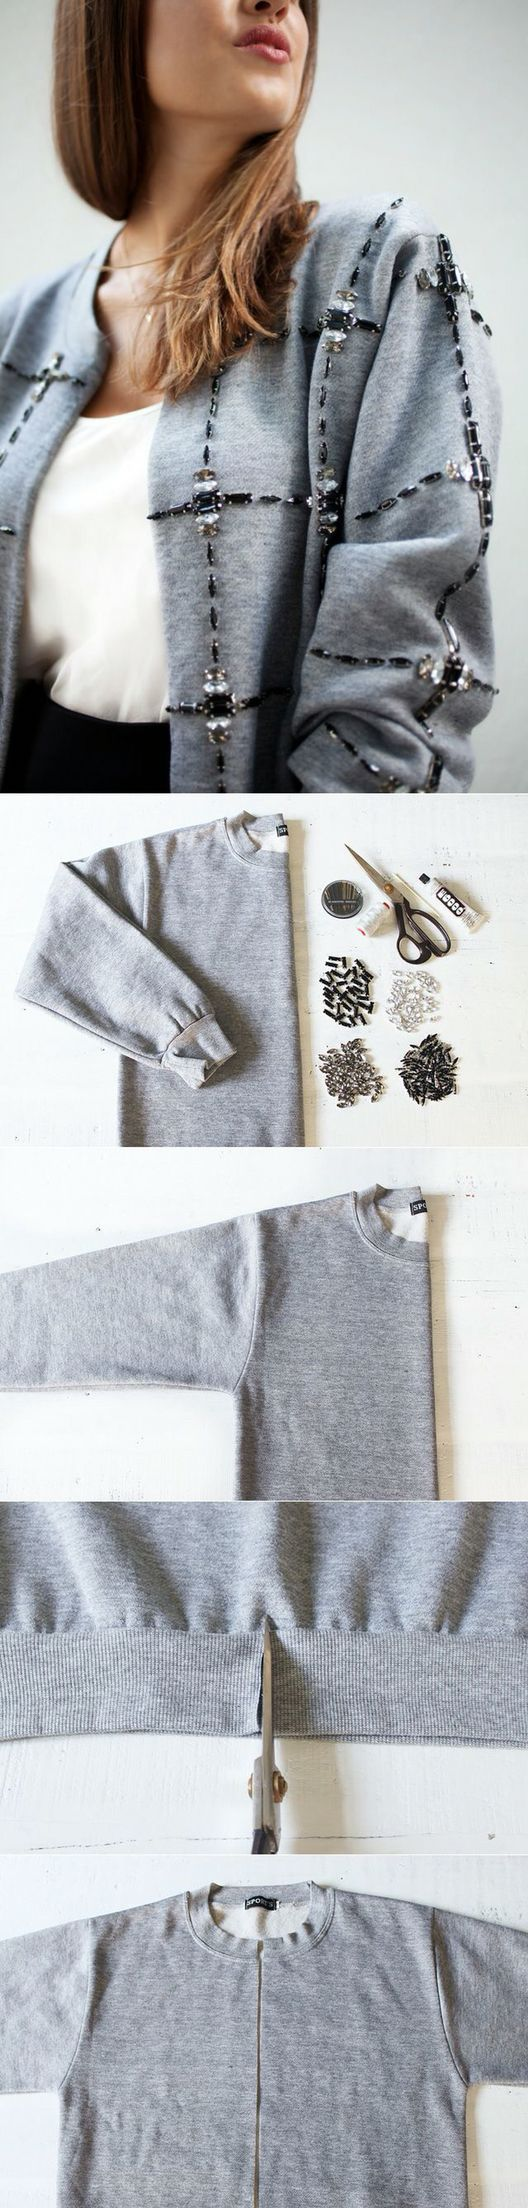 Diy sweatshirt